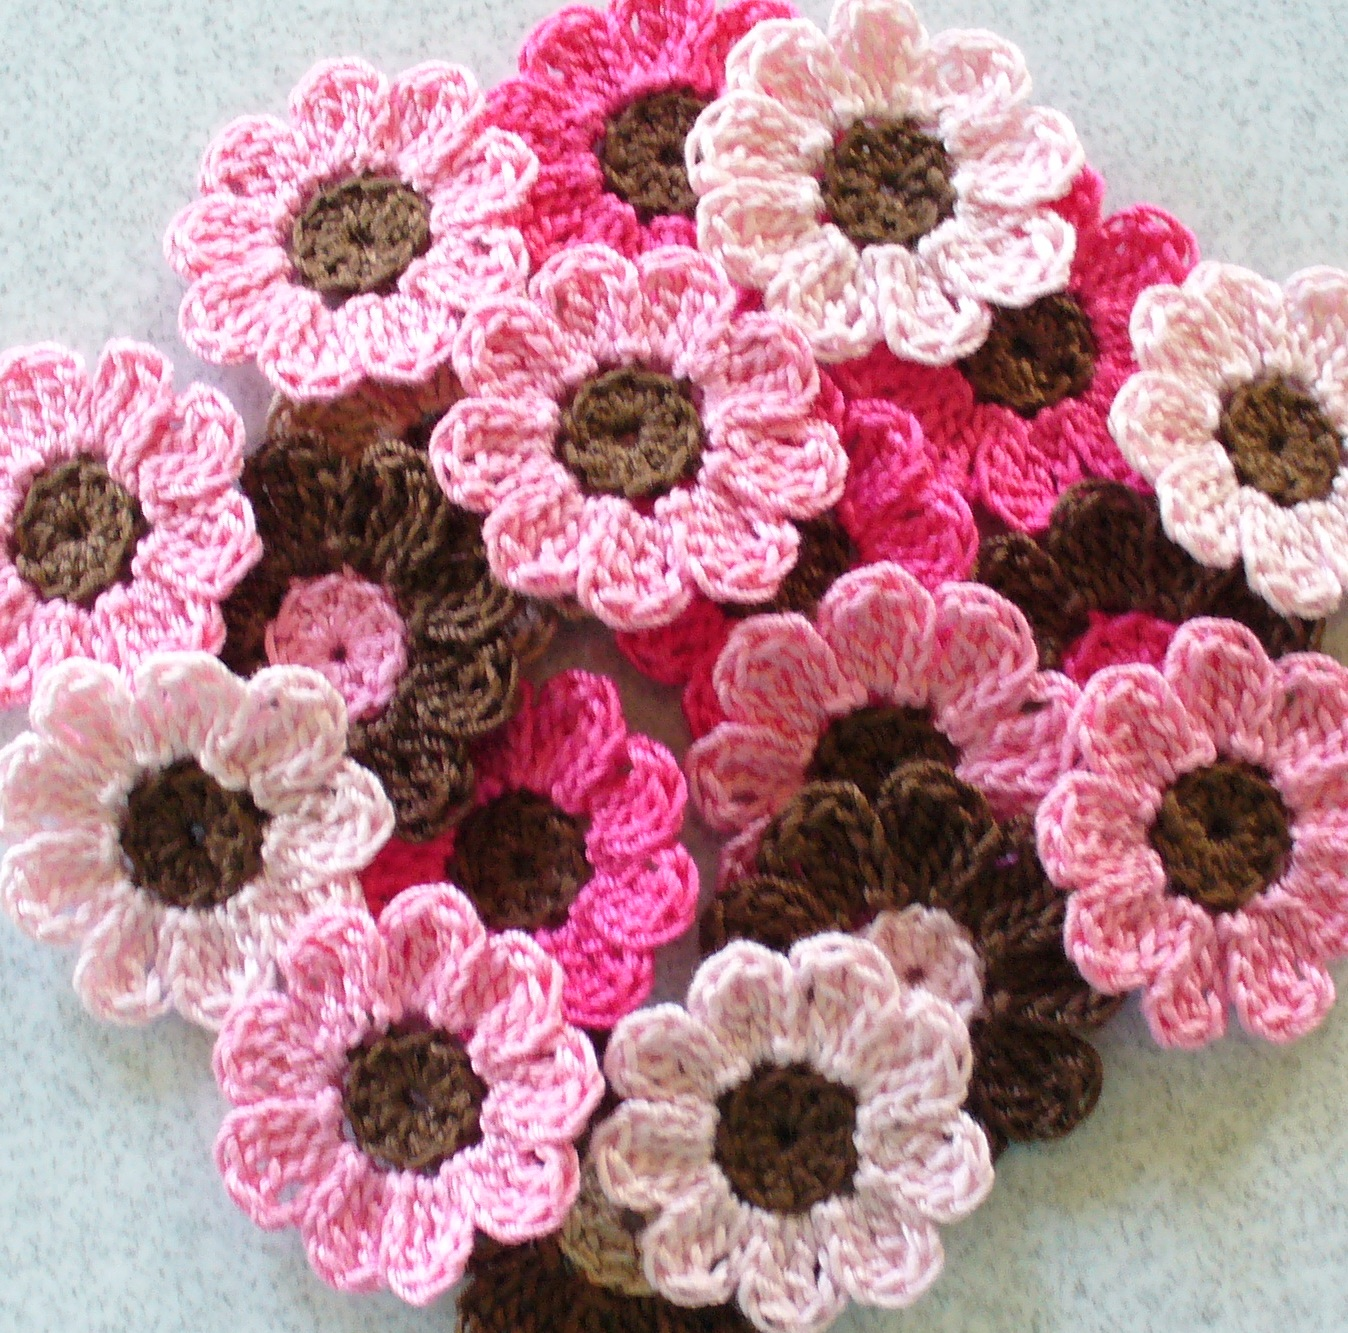 Handmade Crochet Flowers, Appliques, Embellishments, Pink, Brown - Set ...